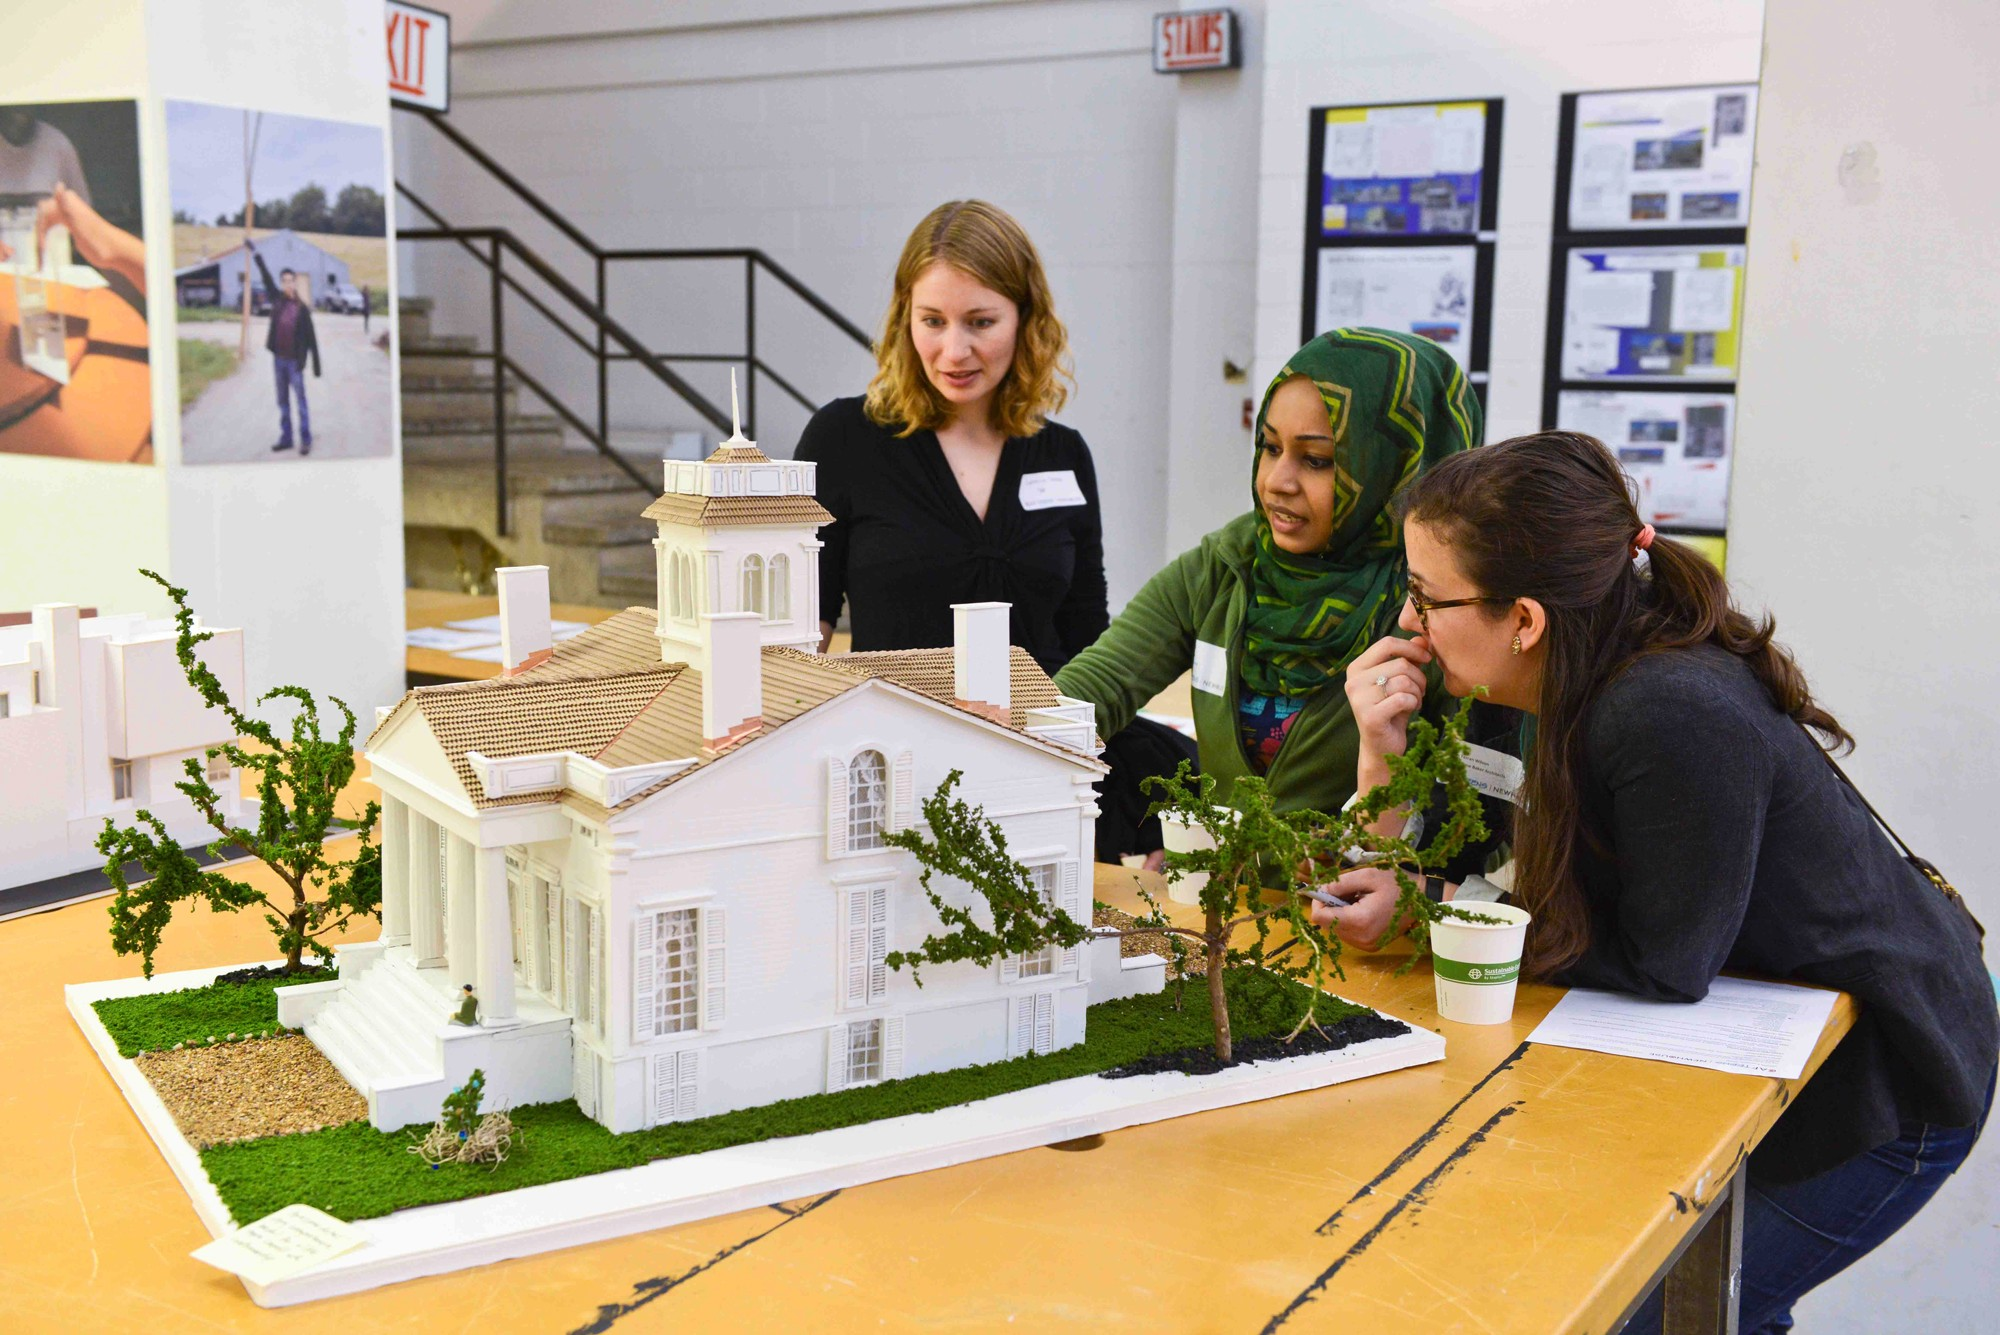 Newhouse architecture and design competition for teens for Www newhouse com